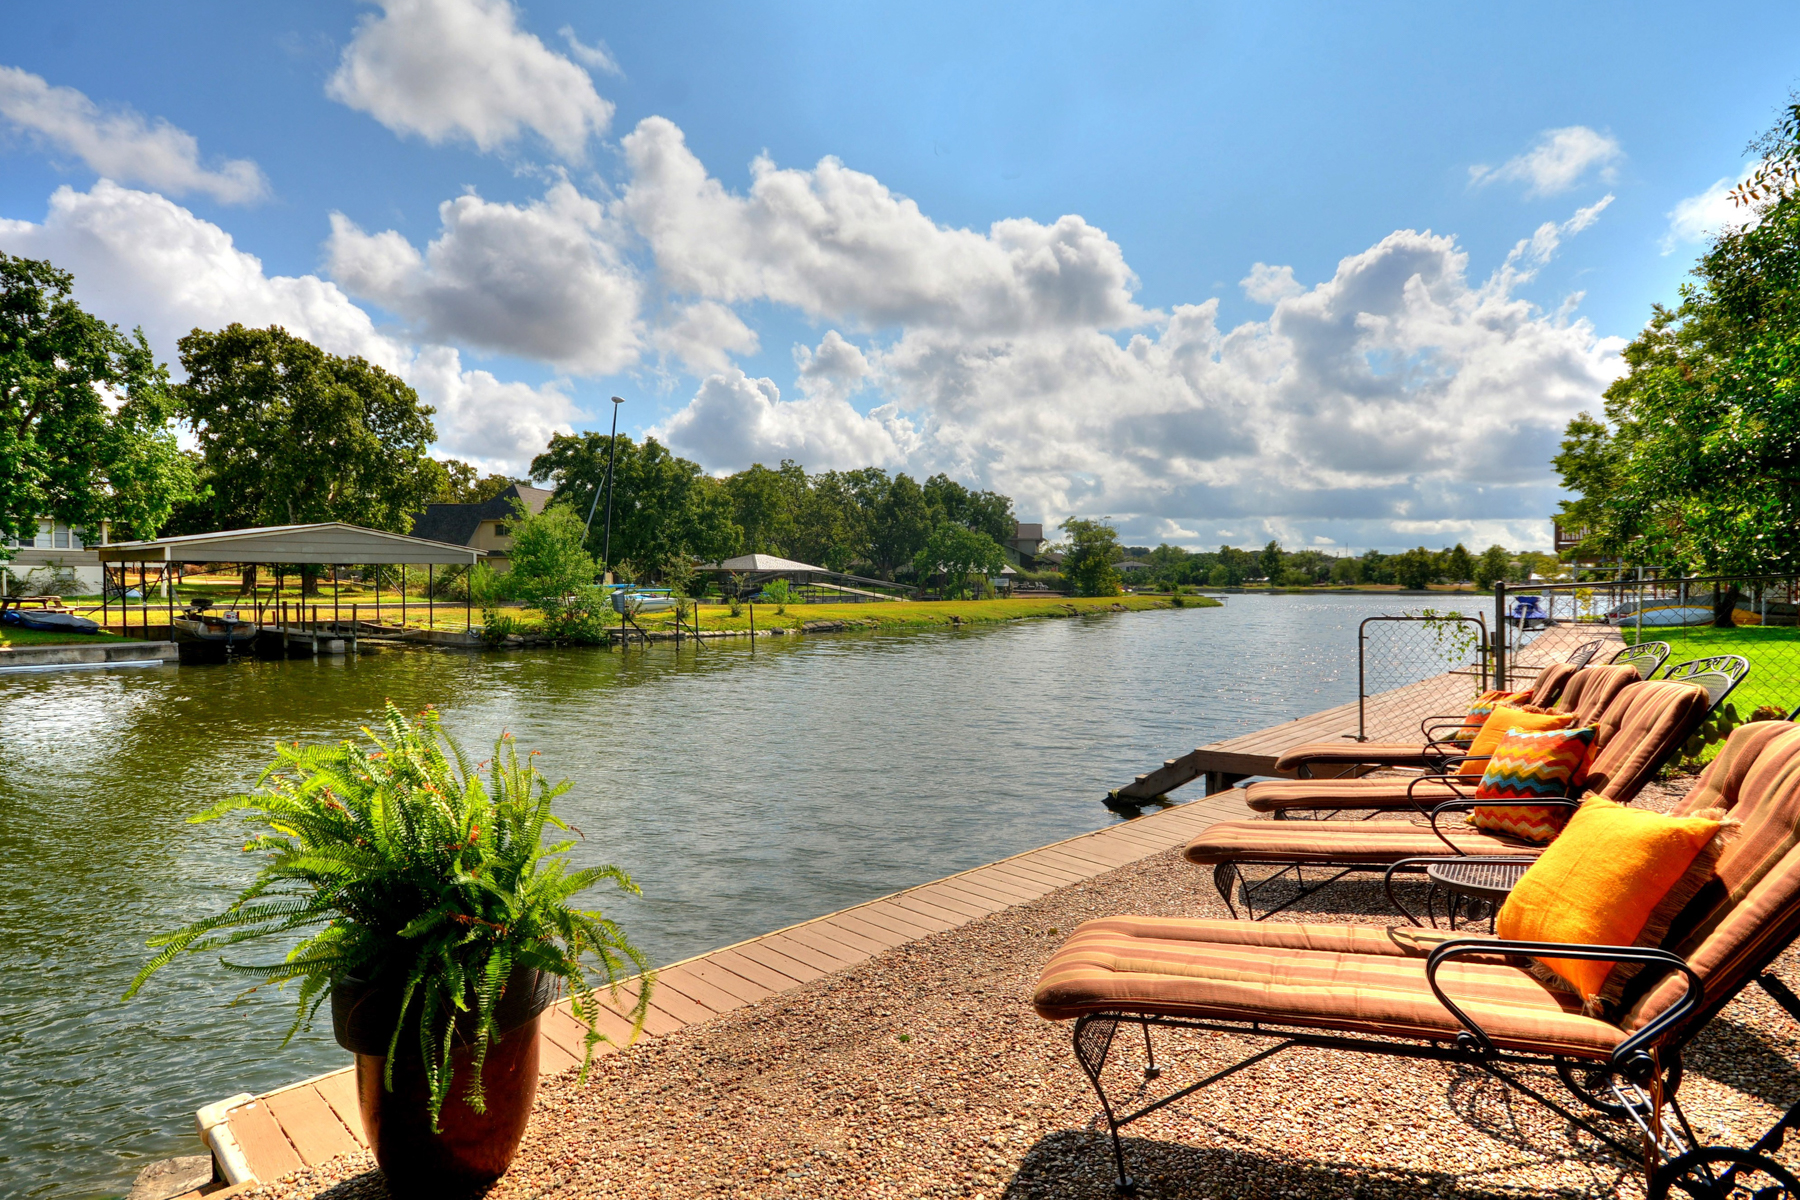 Single Family Home for Sale at The Perfect Weekend Getaway 525 E Briarway Dr Granite Shoals, Texas 78654 United States